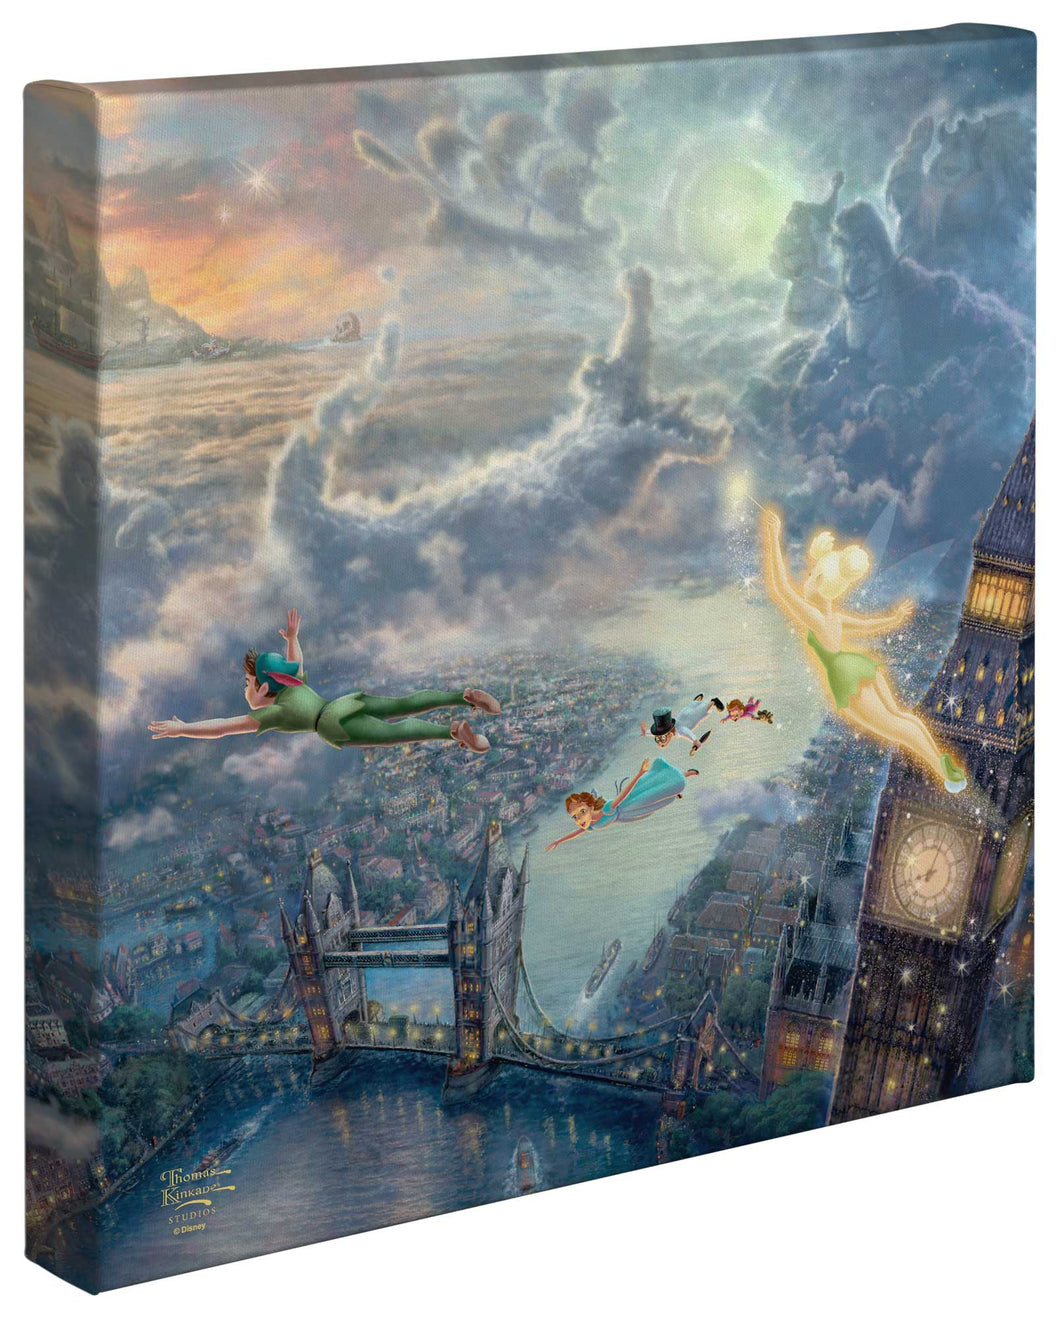 Tinker Bell and Peter Pan Fly to Neverland - 14